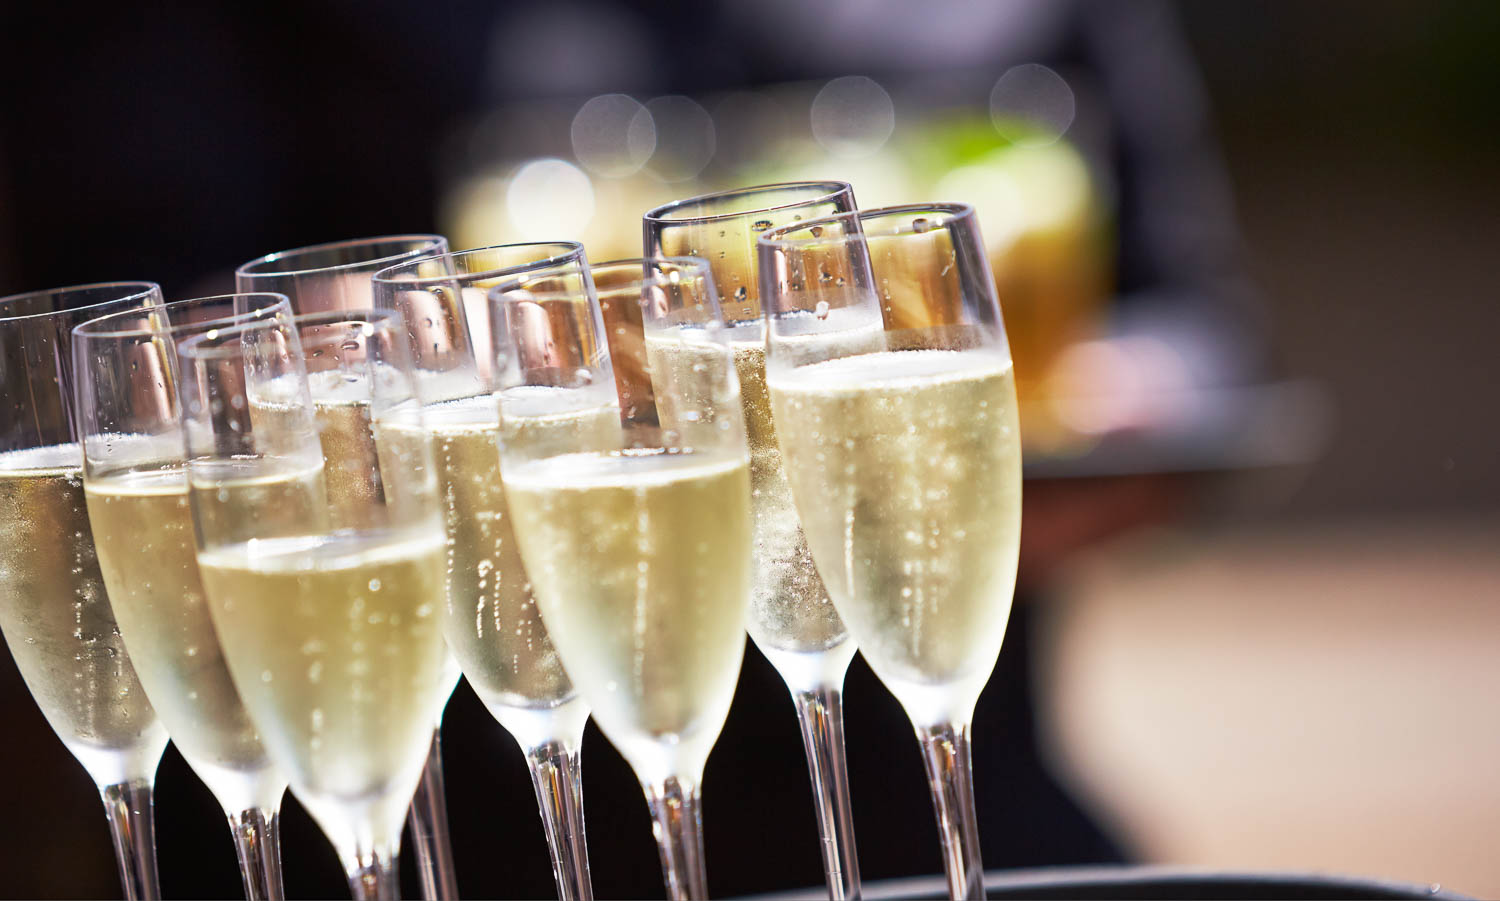 Two Major Sparkling Wine Companies Join Forces to Form Freixenet Mionetto USA, Leading Sparkling Wine Company in the U.S.